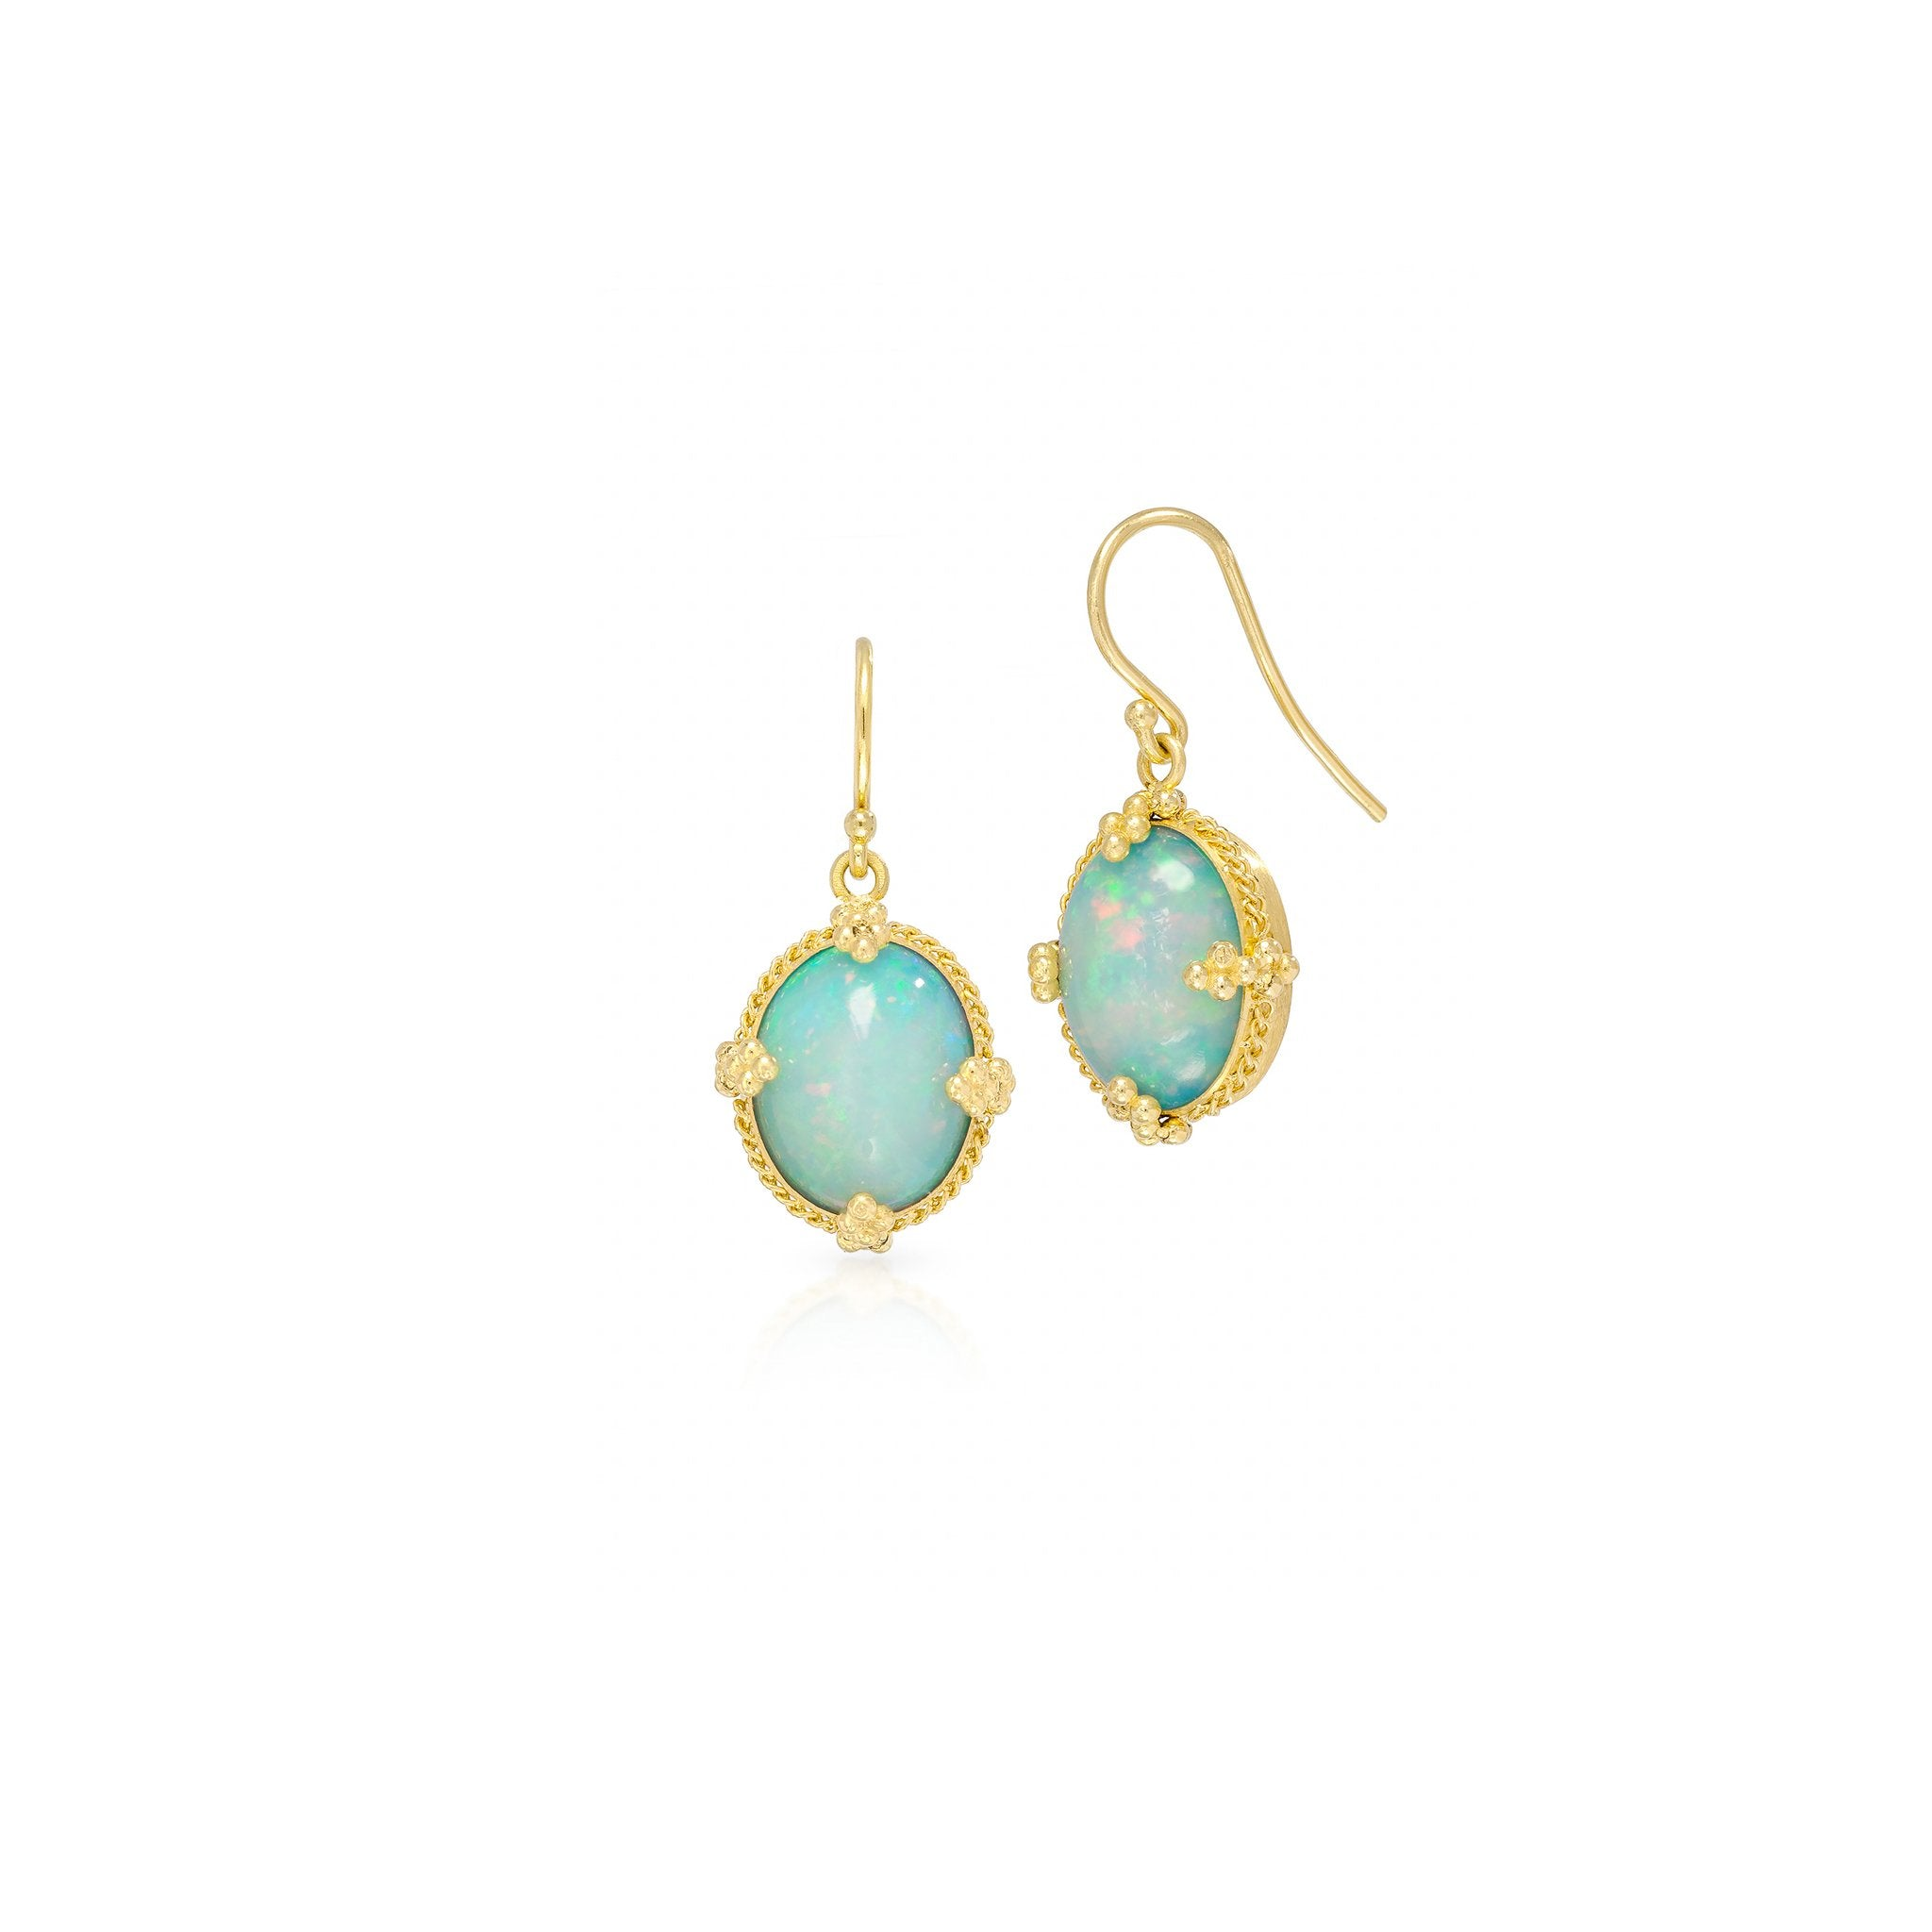 Amali-Ethiopian Opal Earrings